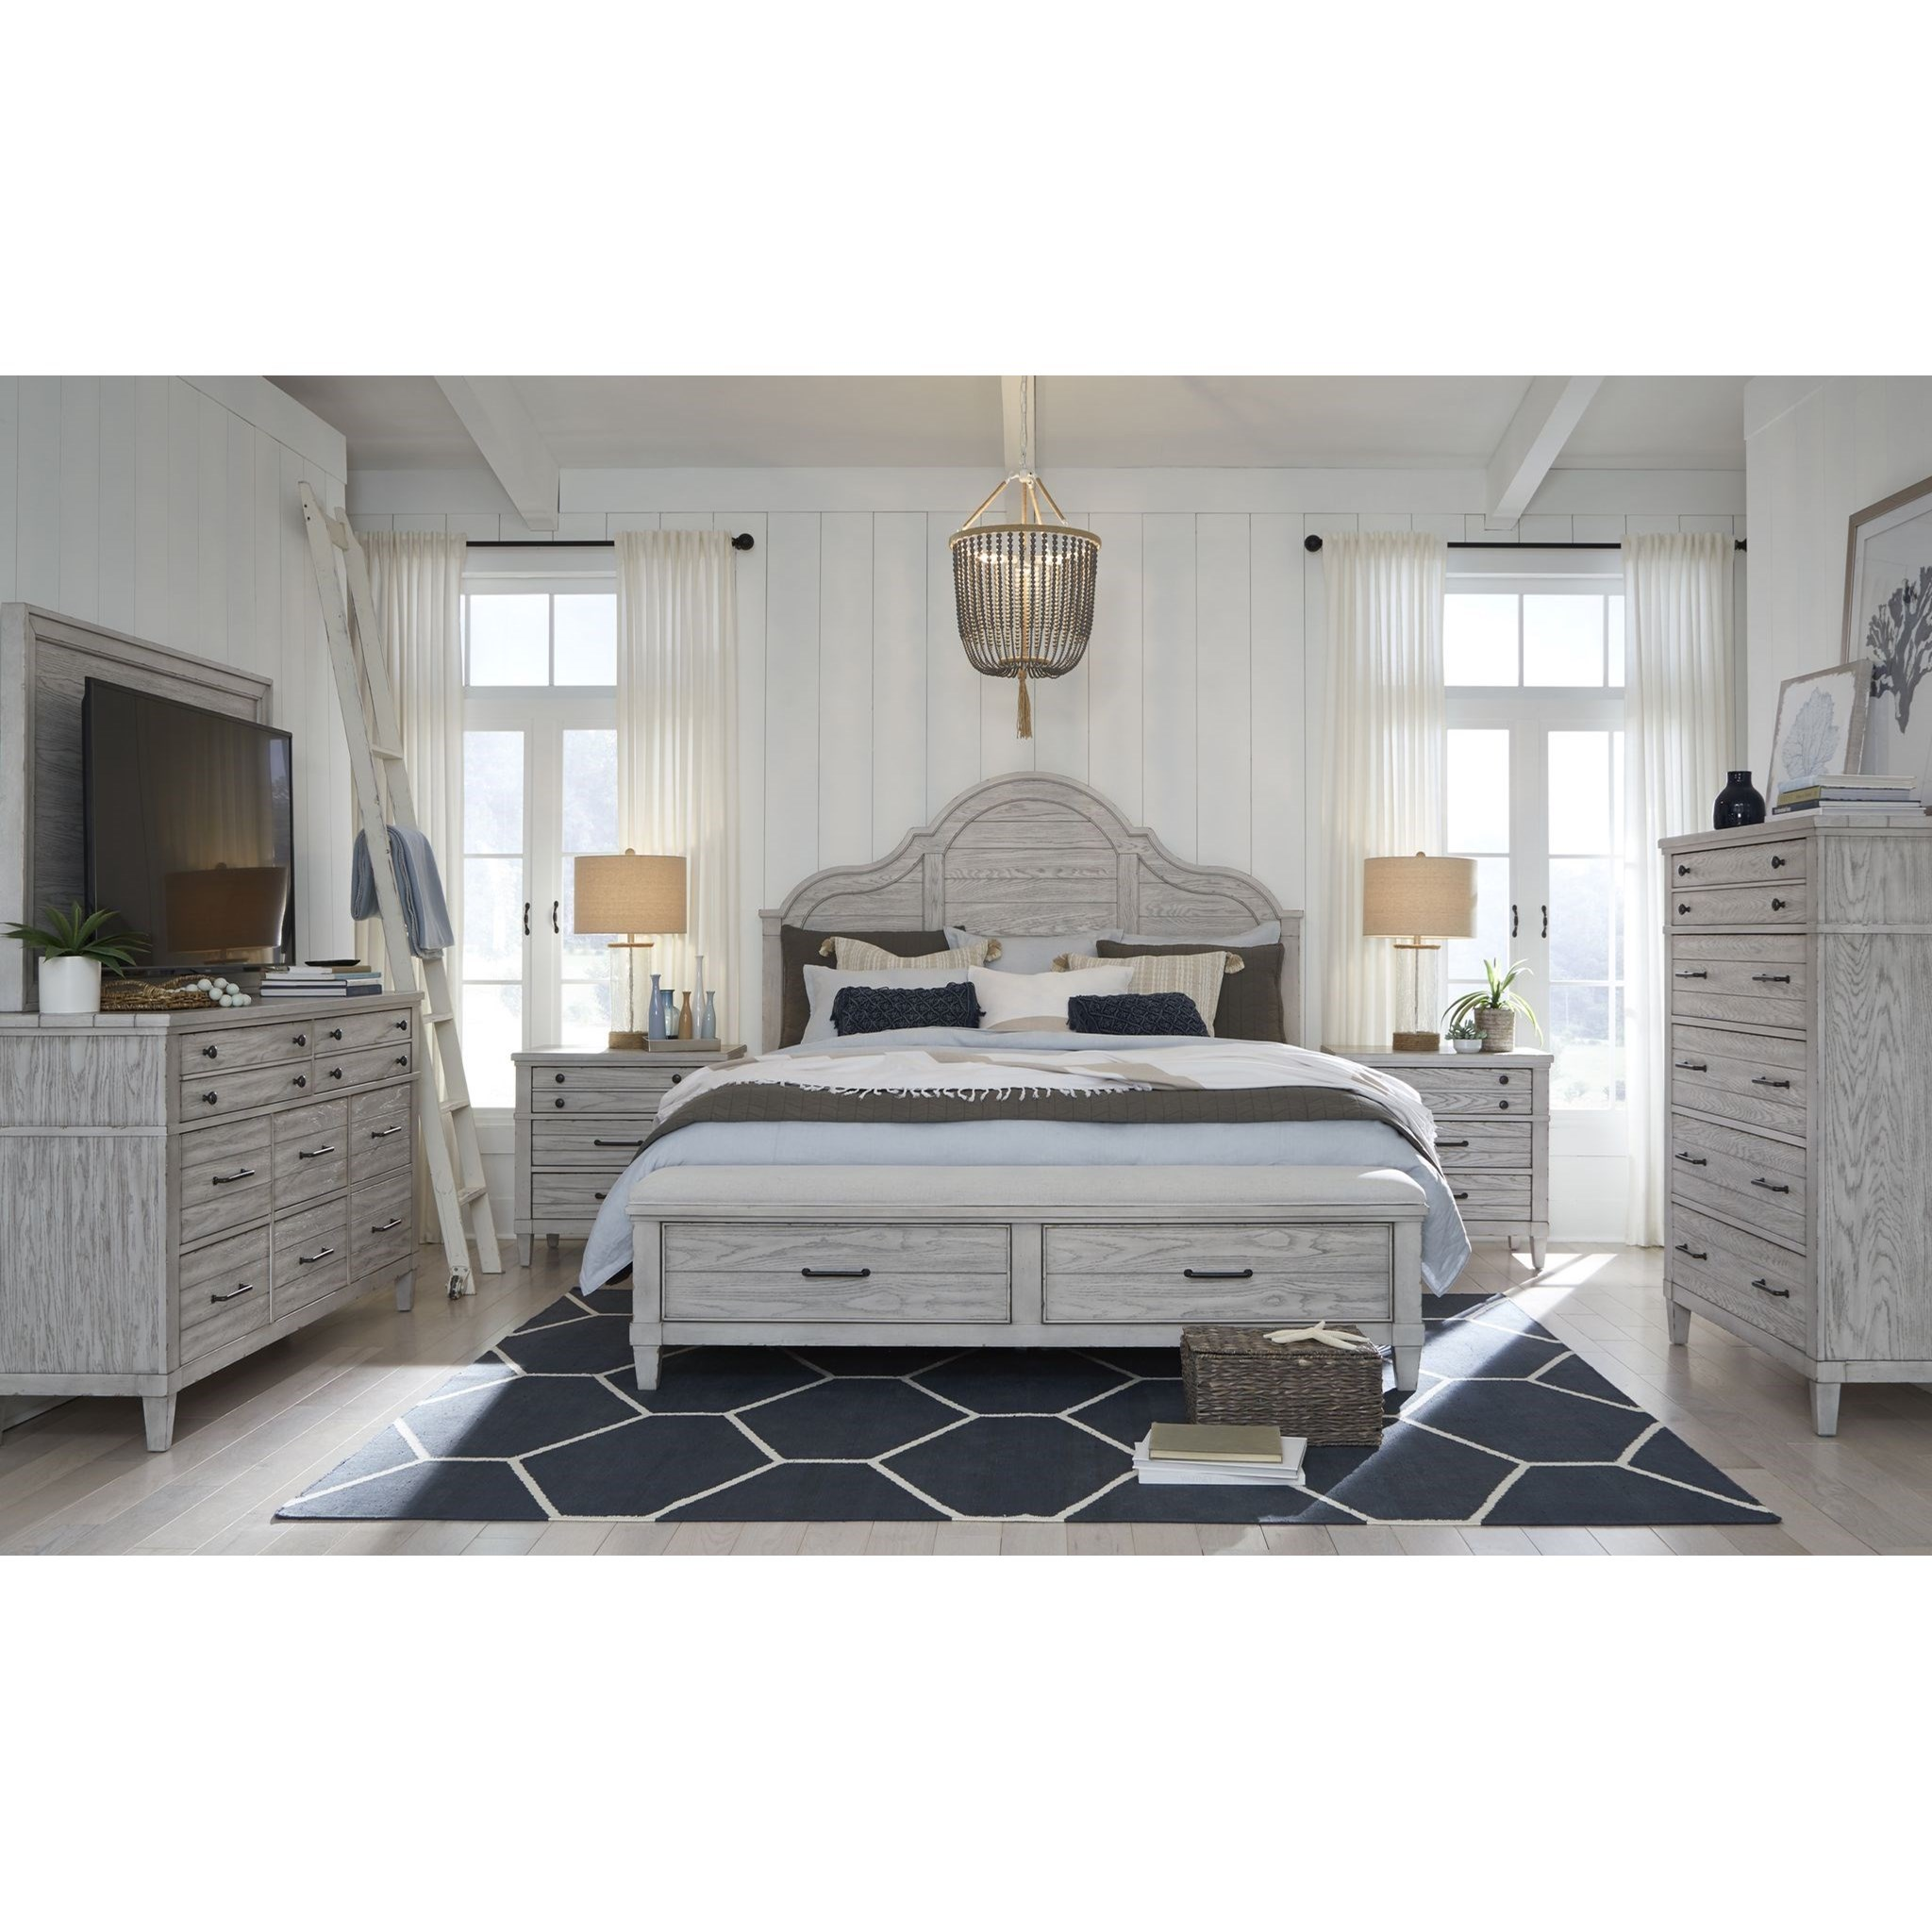 Belhaven California King Bedroom Group by Legacy Classic at Mueller Furniture